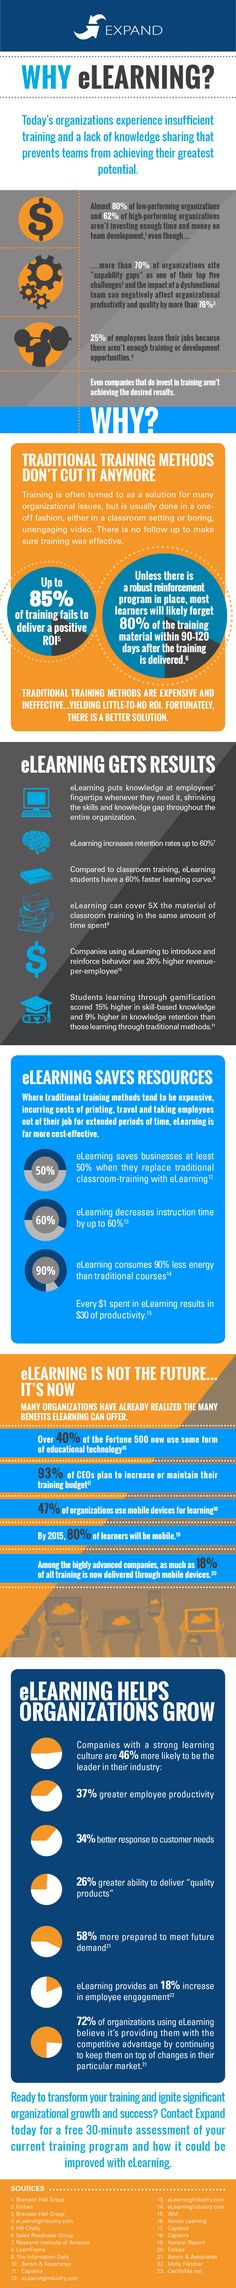 5 Reasons to Embrace eLearning Infographic - http://elearninginfographics.com/5-reasons-embrace-elearning-infographic/